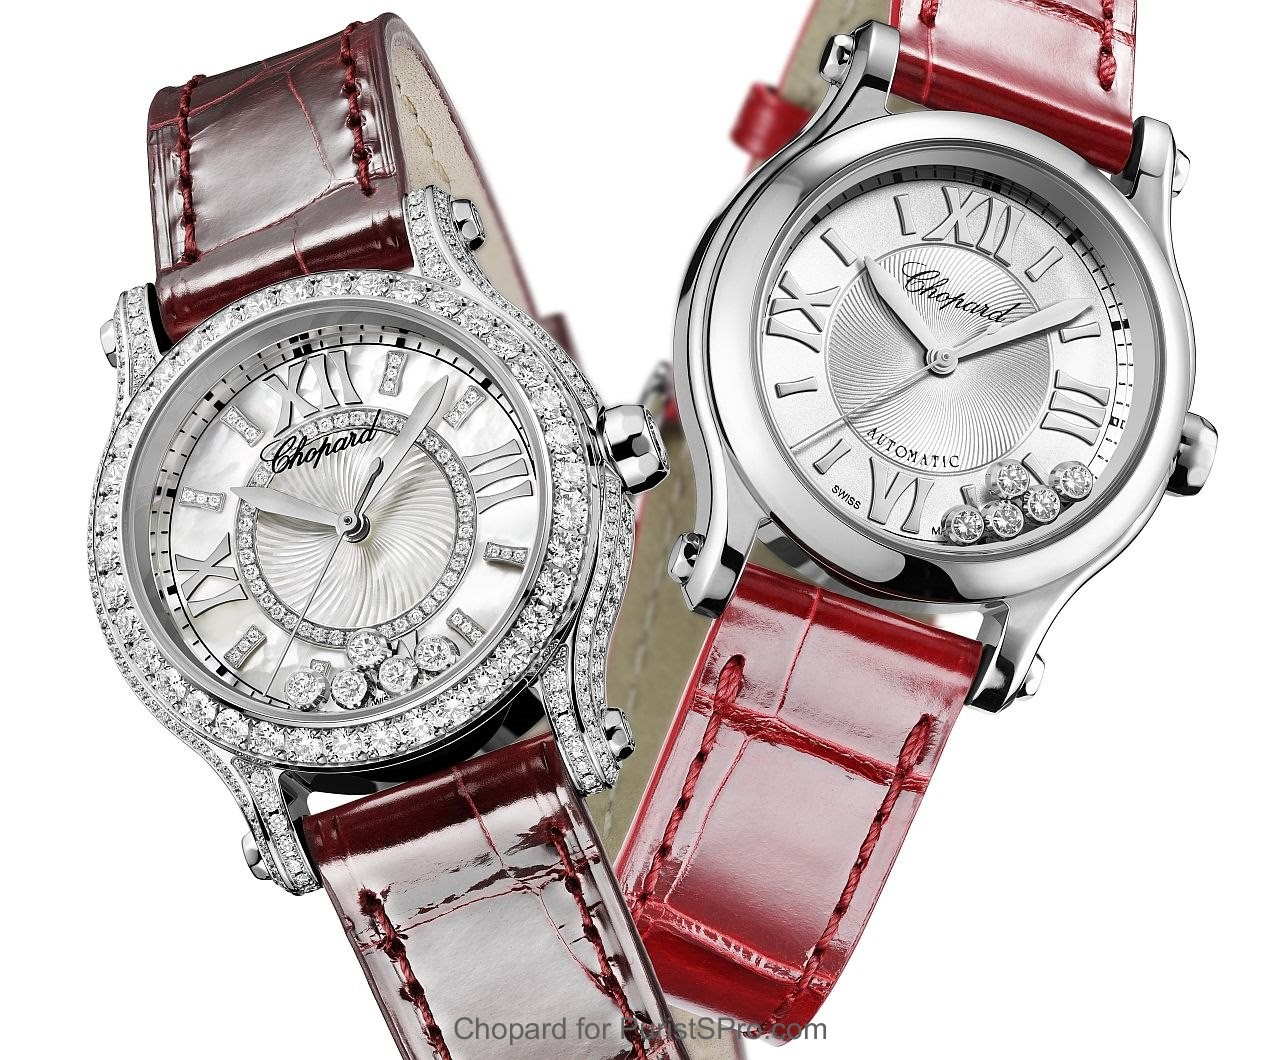 344f14f30125c Chopard - Christmas 2015 Chopard Gift Ideas for Ladies part 1  Happy ...